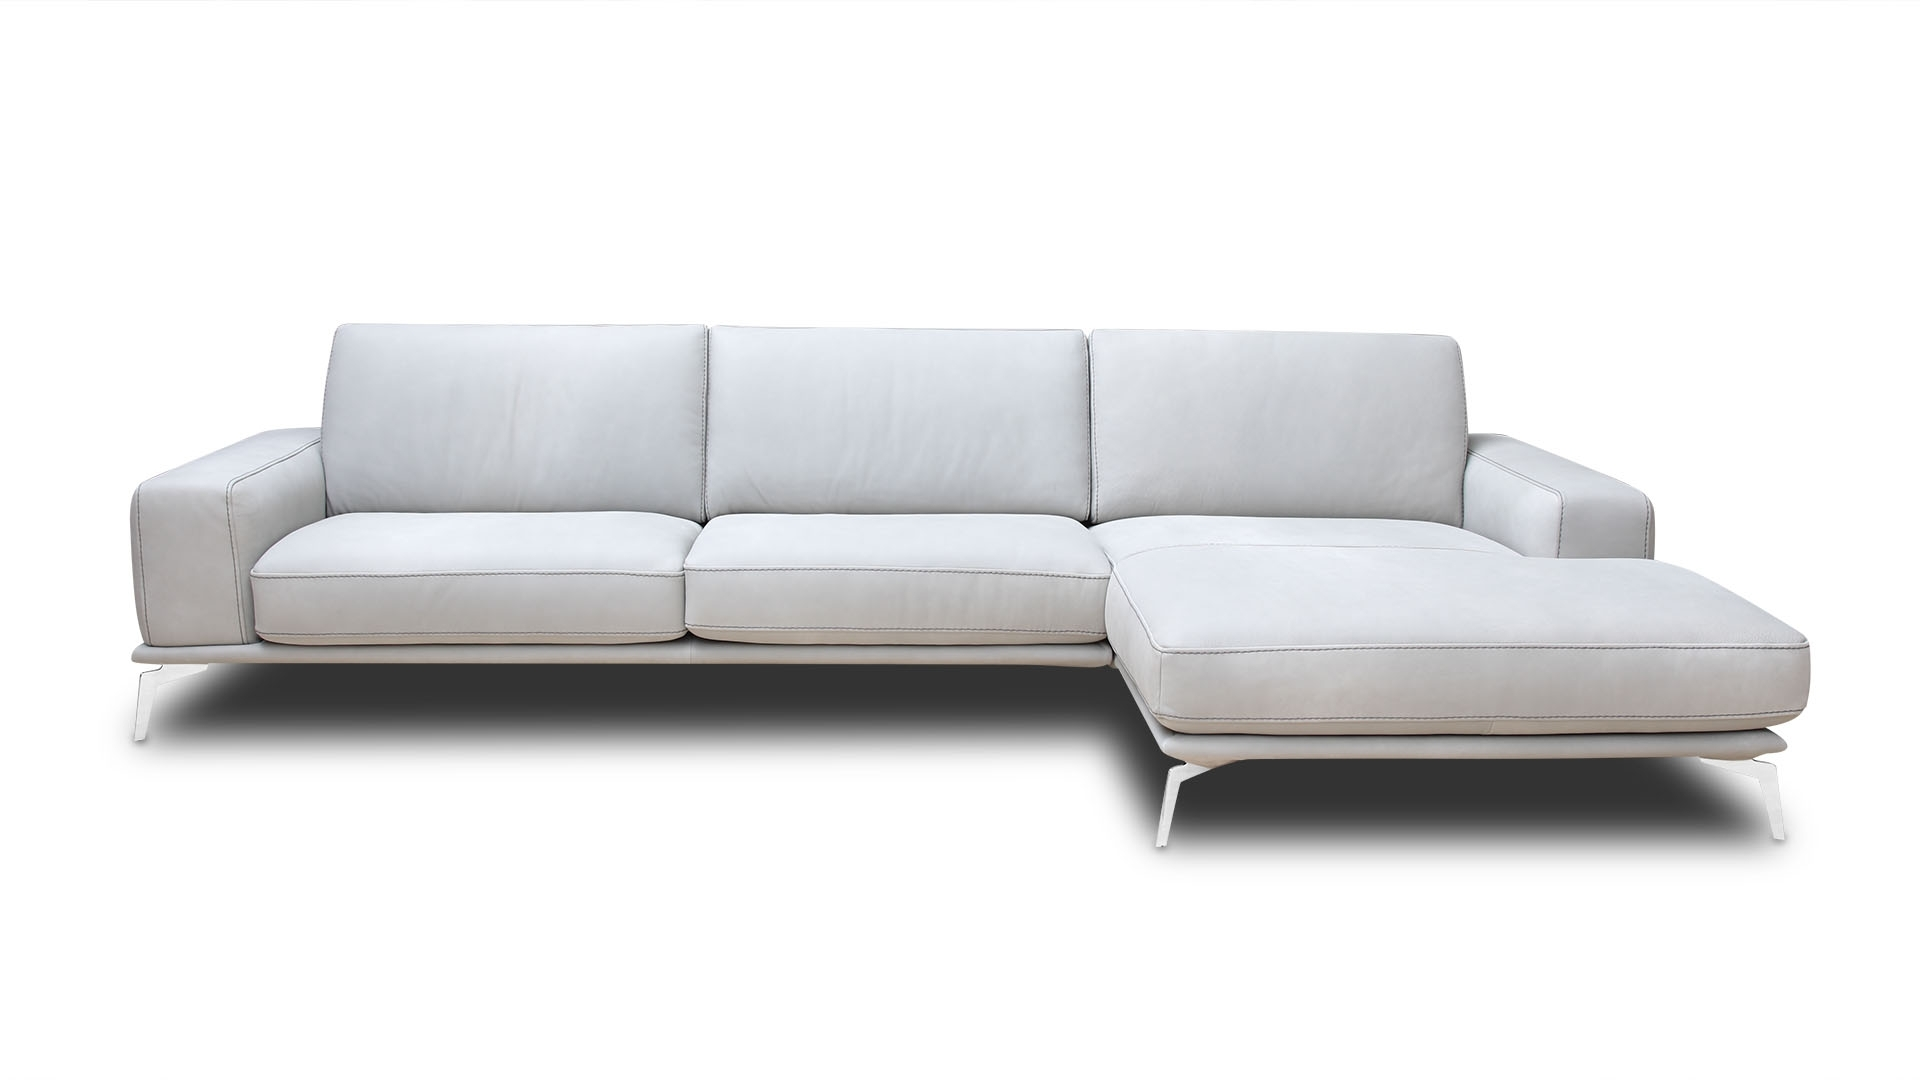 Sofas & Sectionals – Braccisofas With Glamour Ii 3 Piece Sectionals (Image 25 of 25)